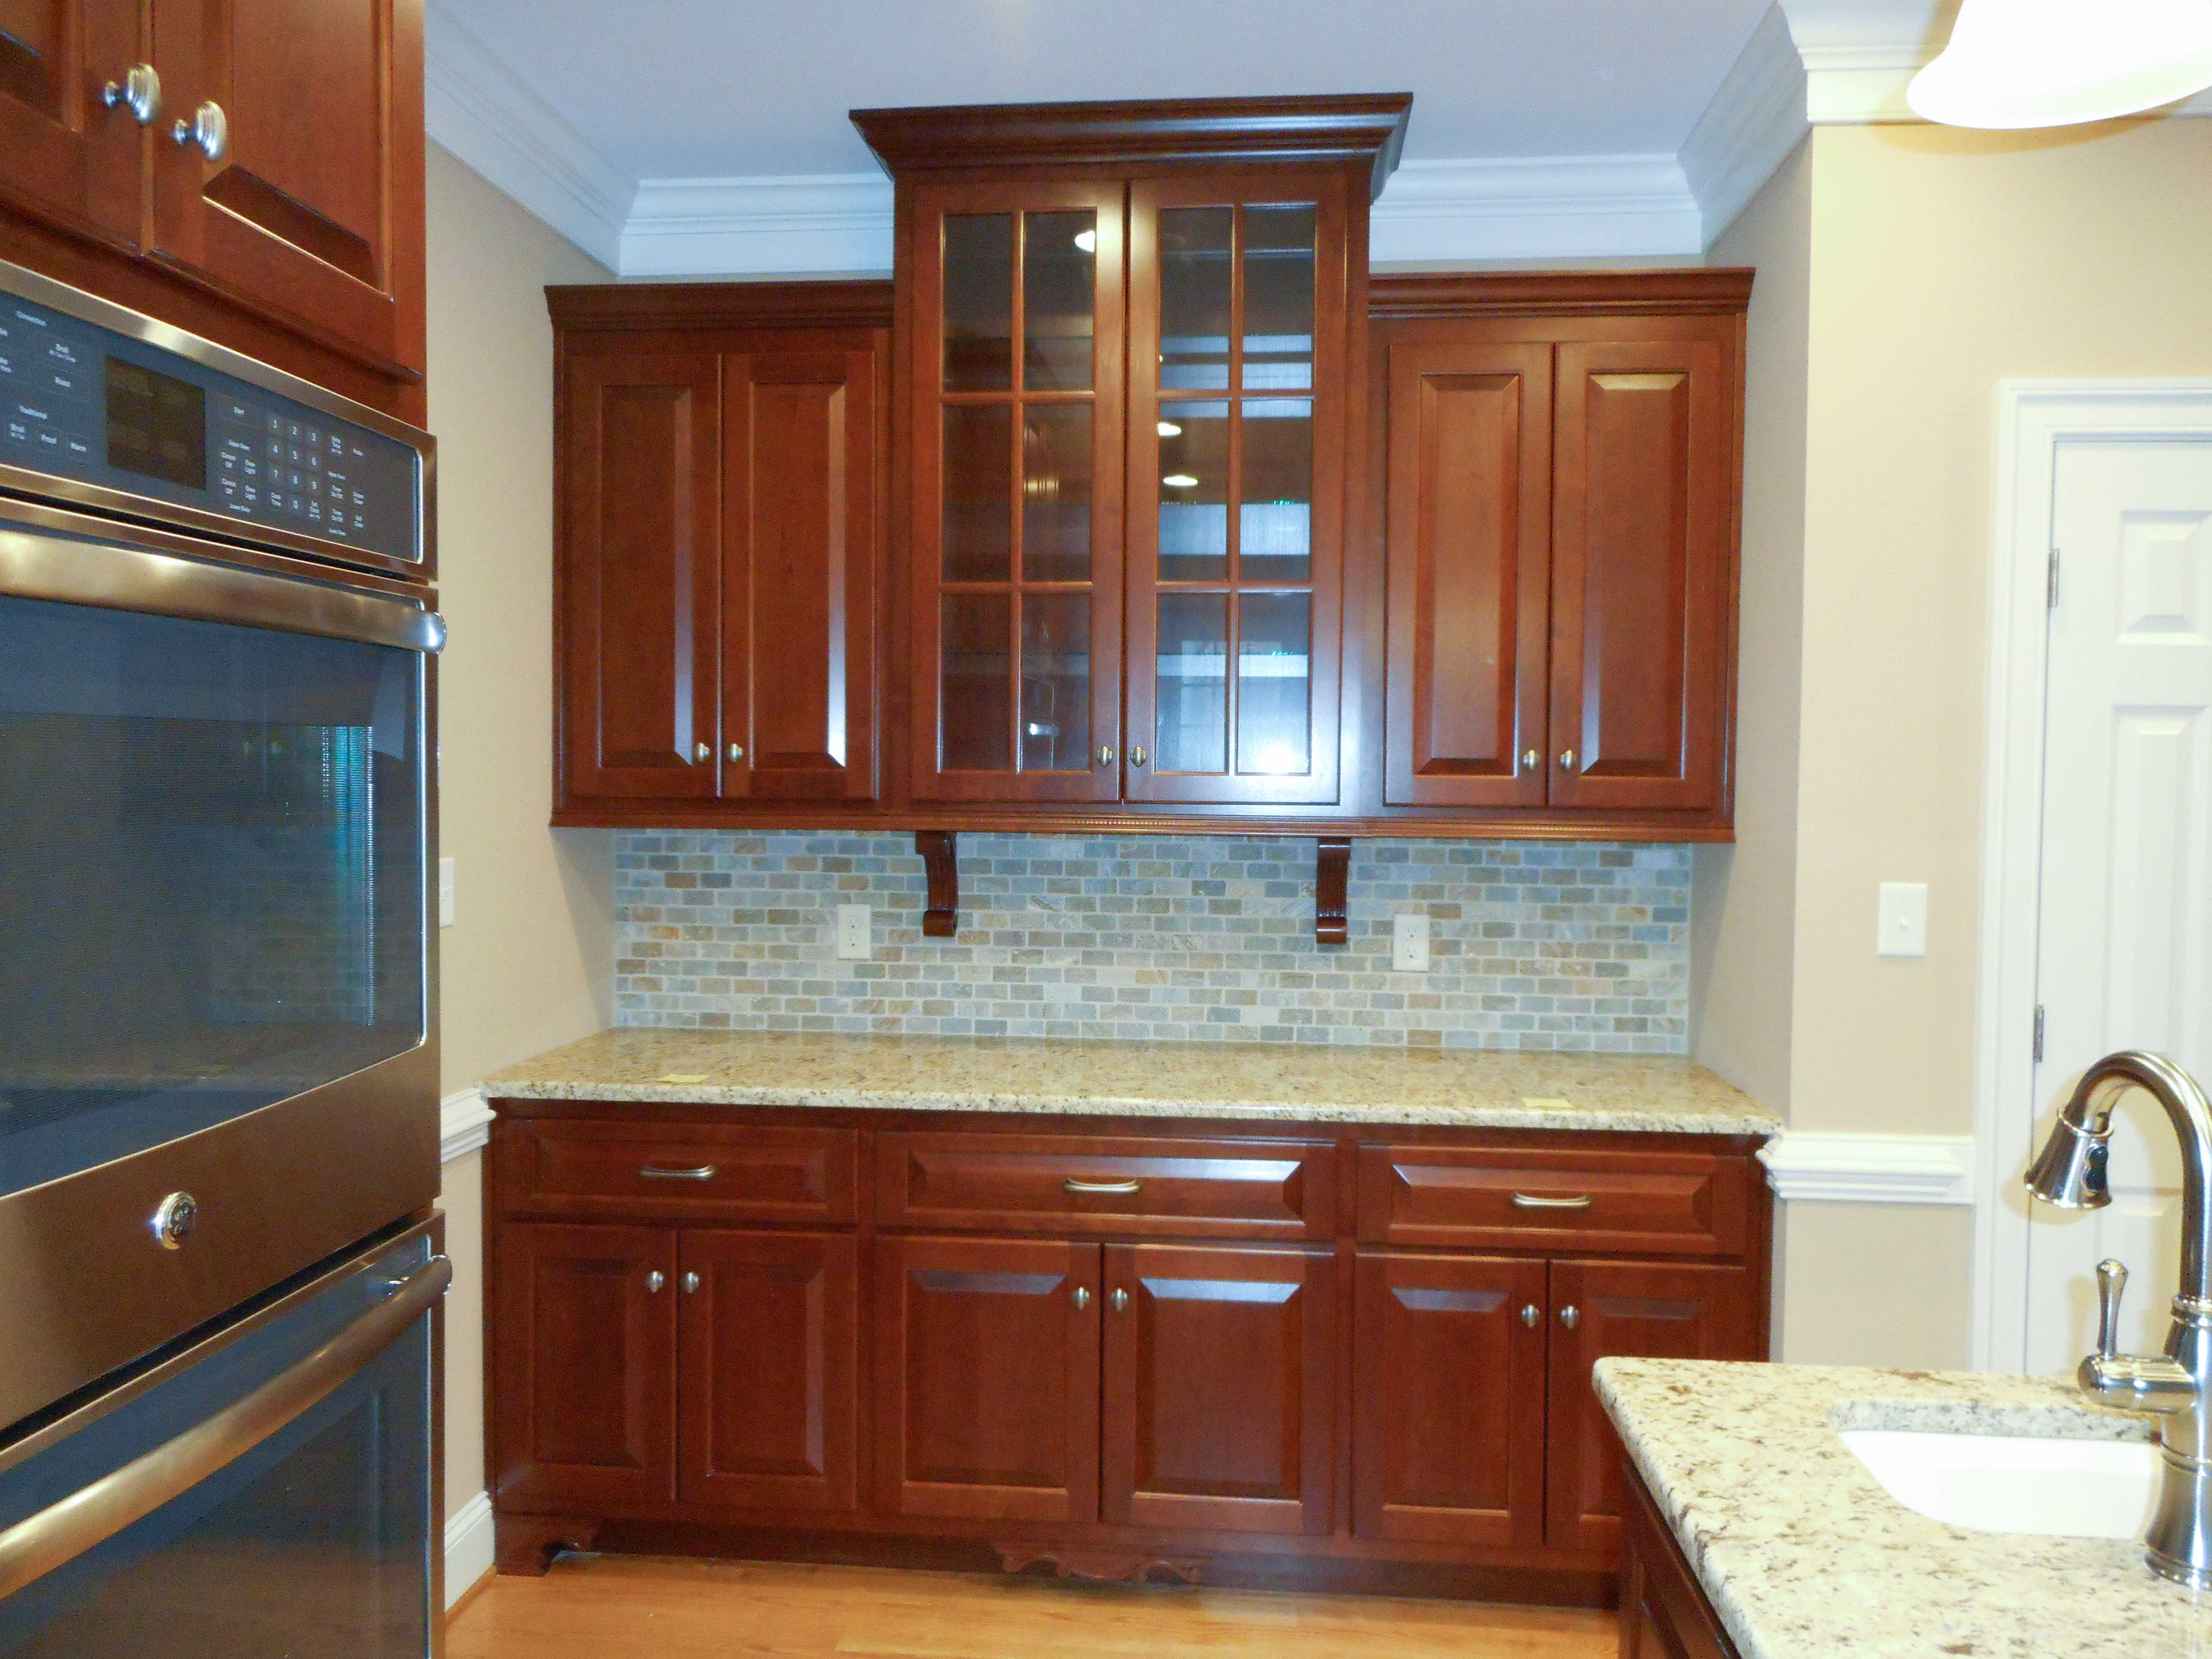 gallery colonial kitchen sink Custom kitchens colonial kitchens open shelves